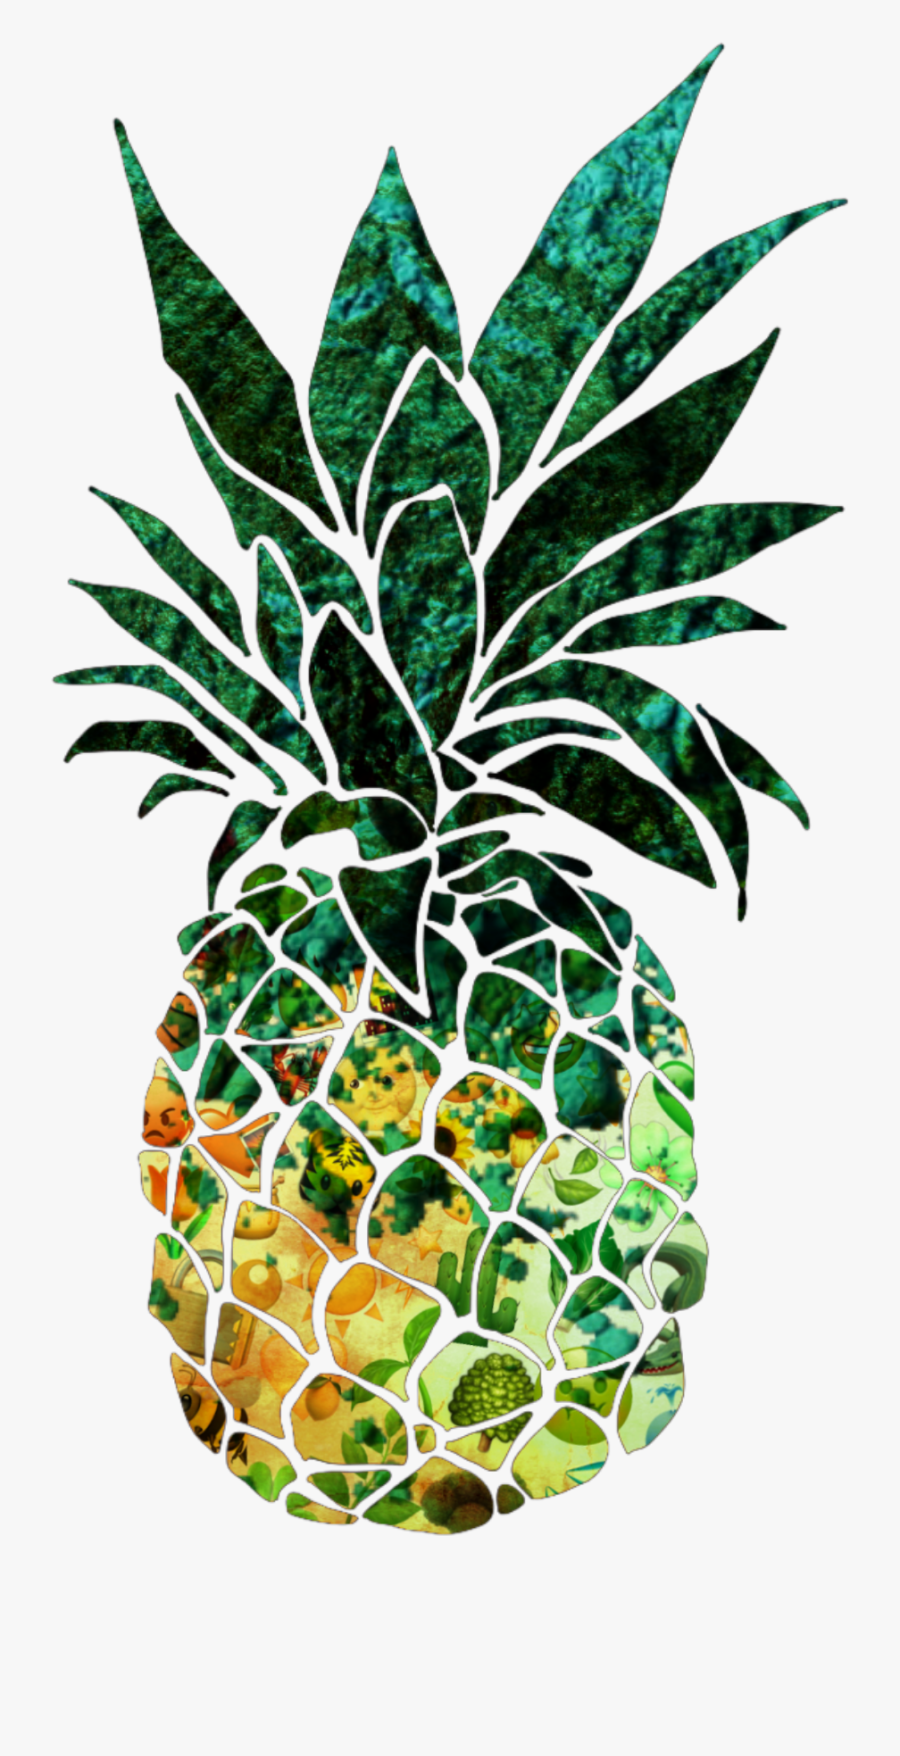 Transparent Pineapple Clipart - Minimalist Black And White Paintings, Transparent Clipart